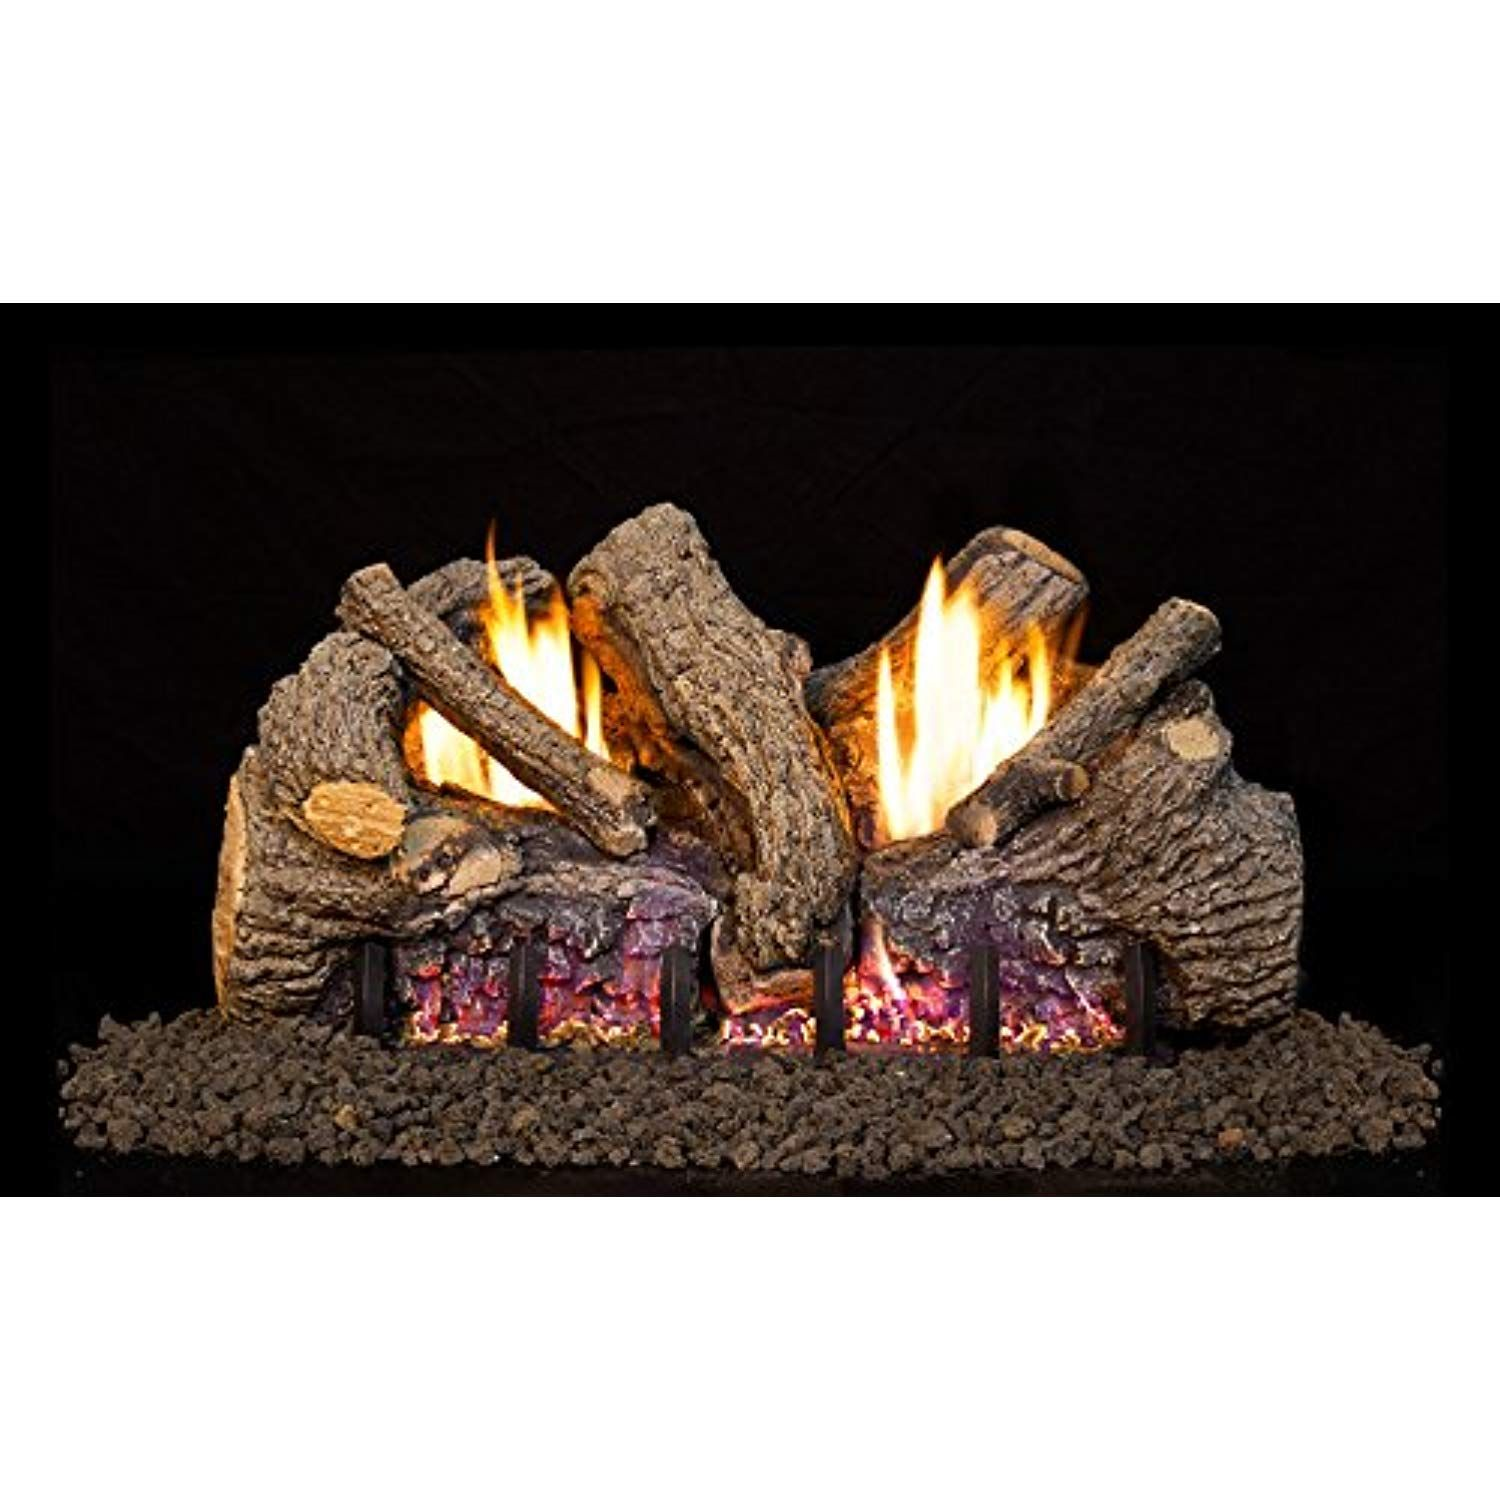 Peterson Real Fyre 30inch Foothill Oak Log Set With Vent